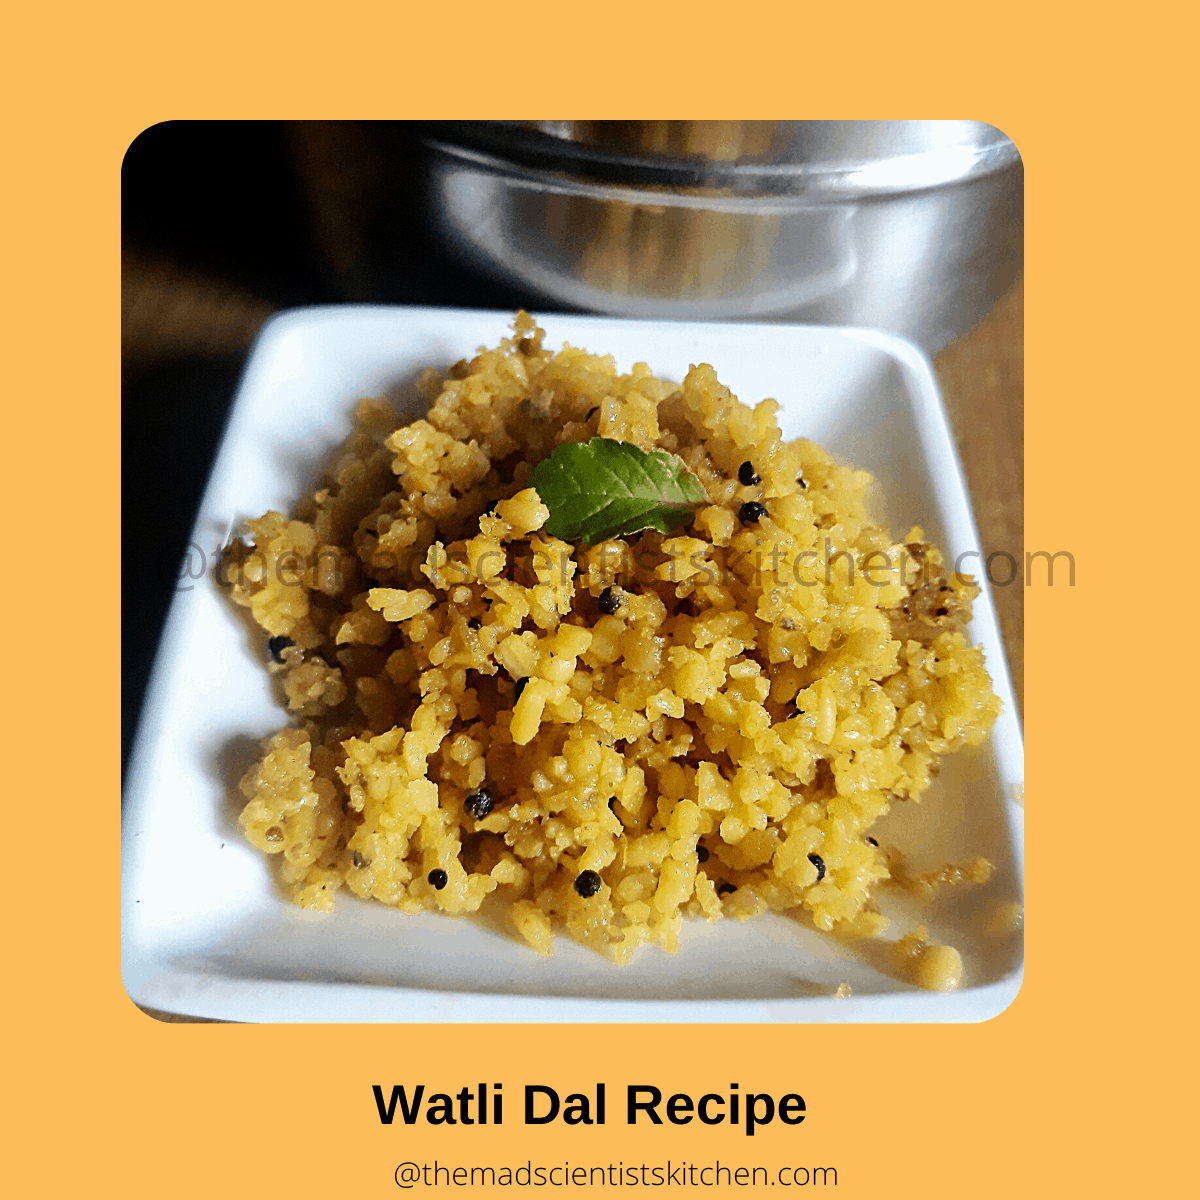 This Padwa I made this easy Vati Dal recipe for a snack.